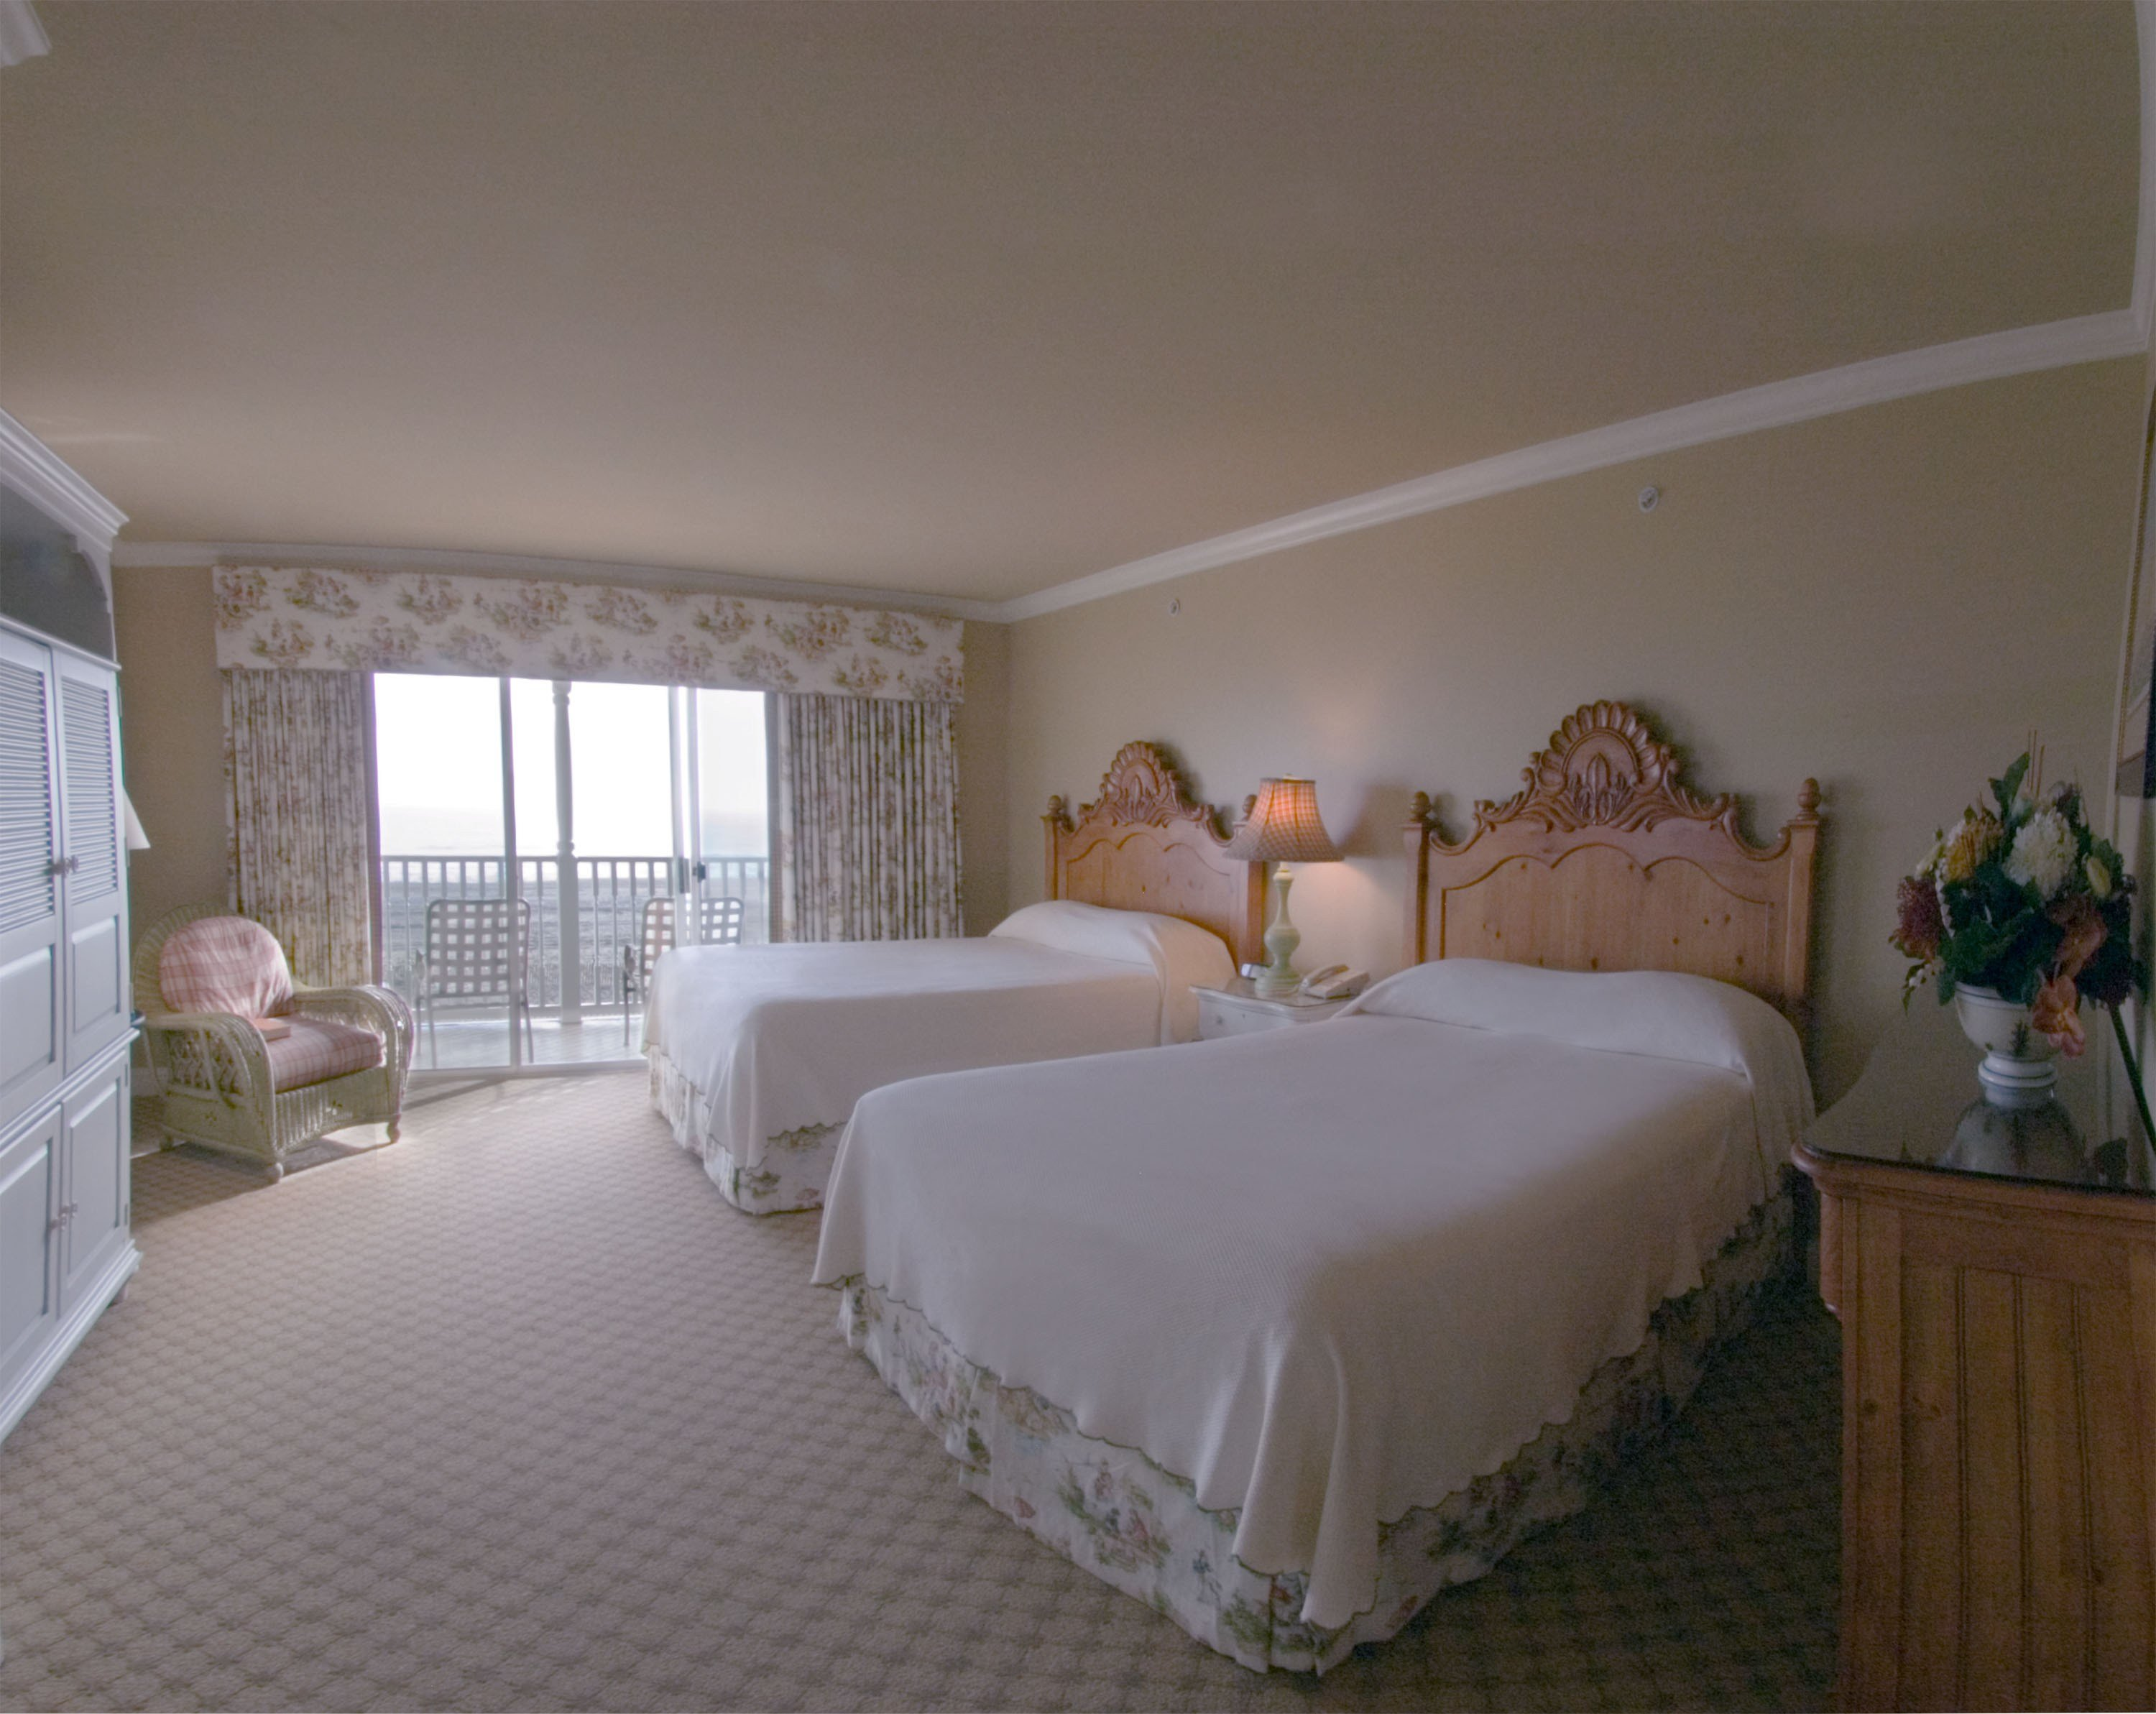 Best Gallery Ocean City Md Boardwalk Hotel Breakers With Pictures